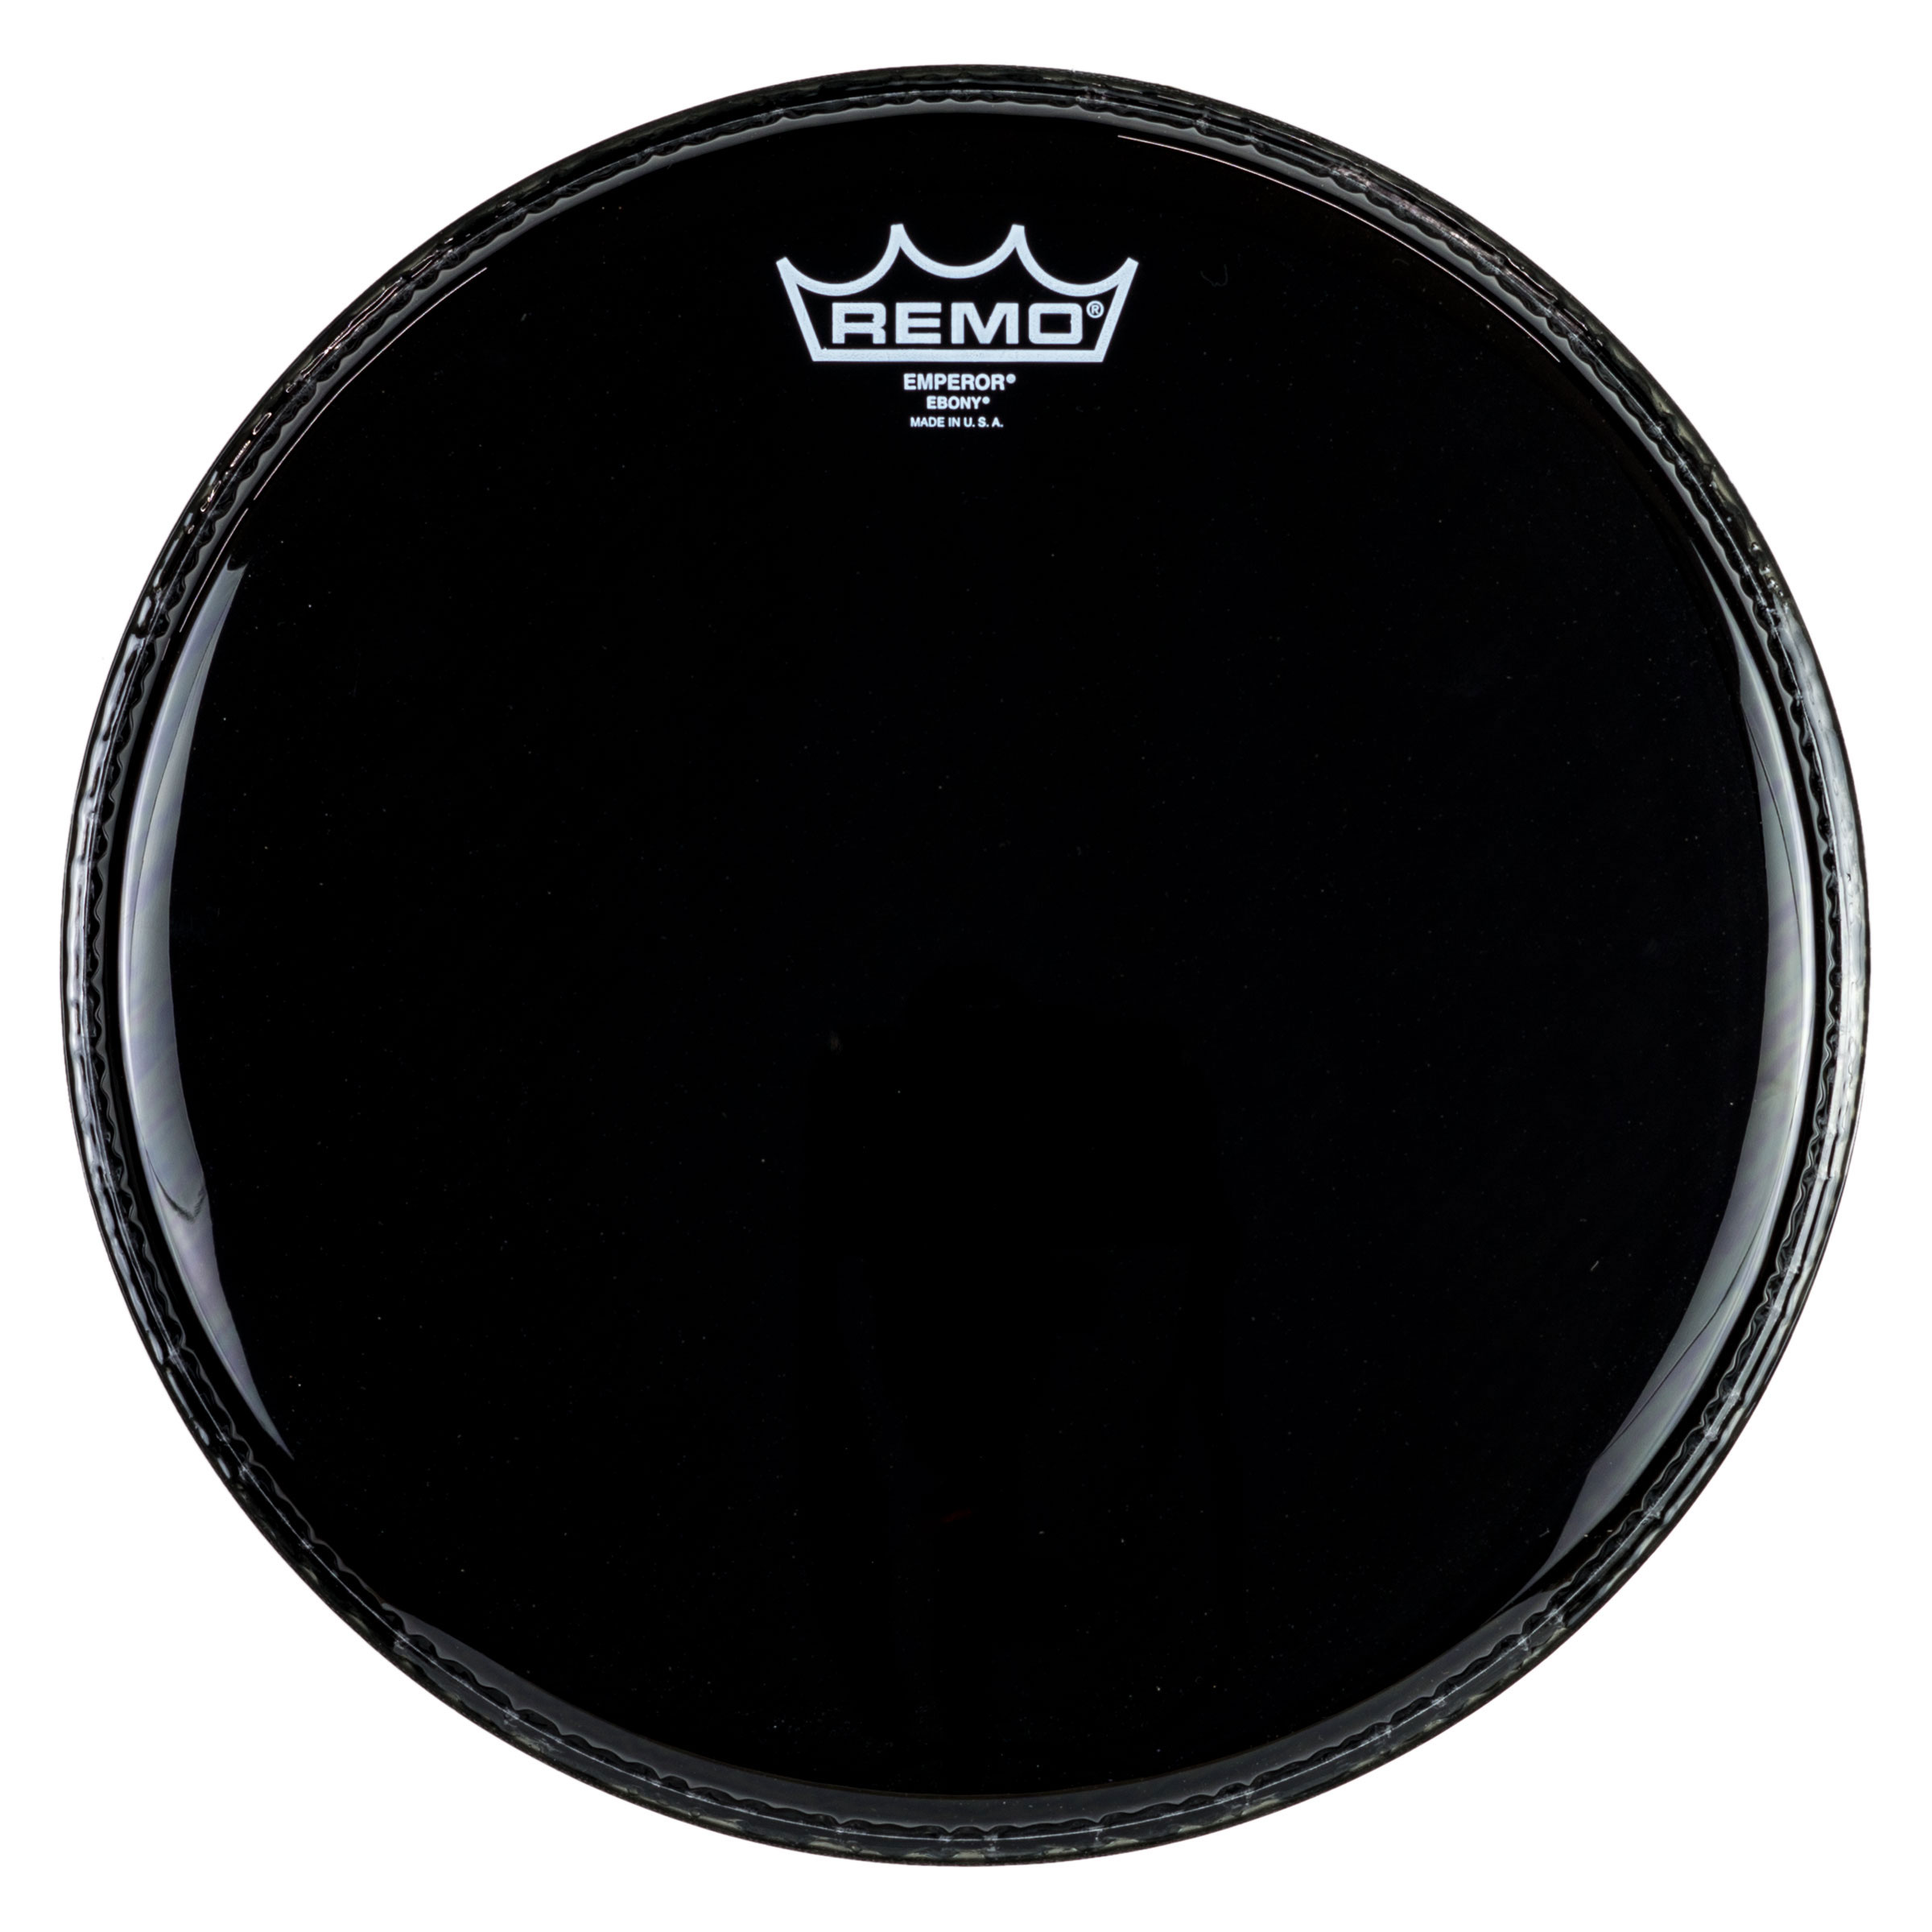 "Remo 14"" Emperor Ebony Drum Head"